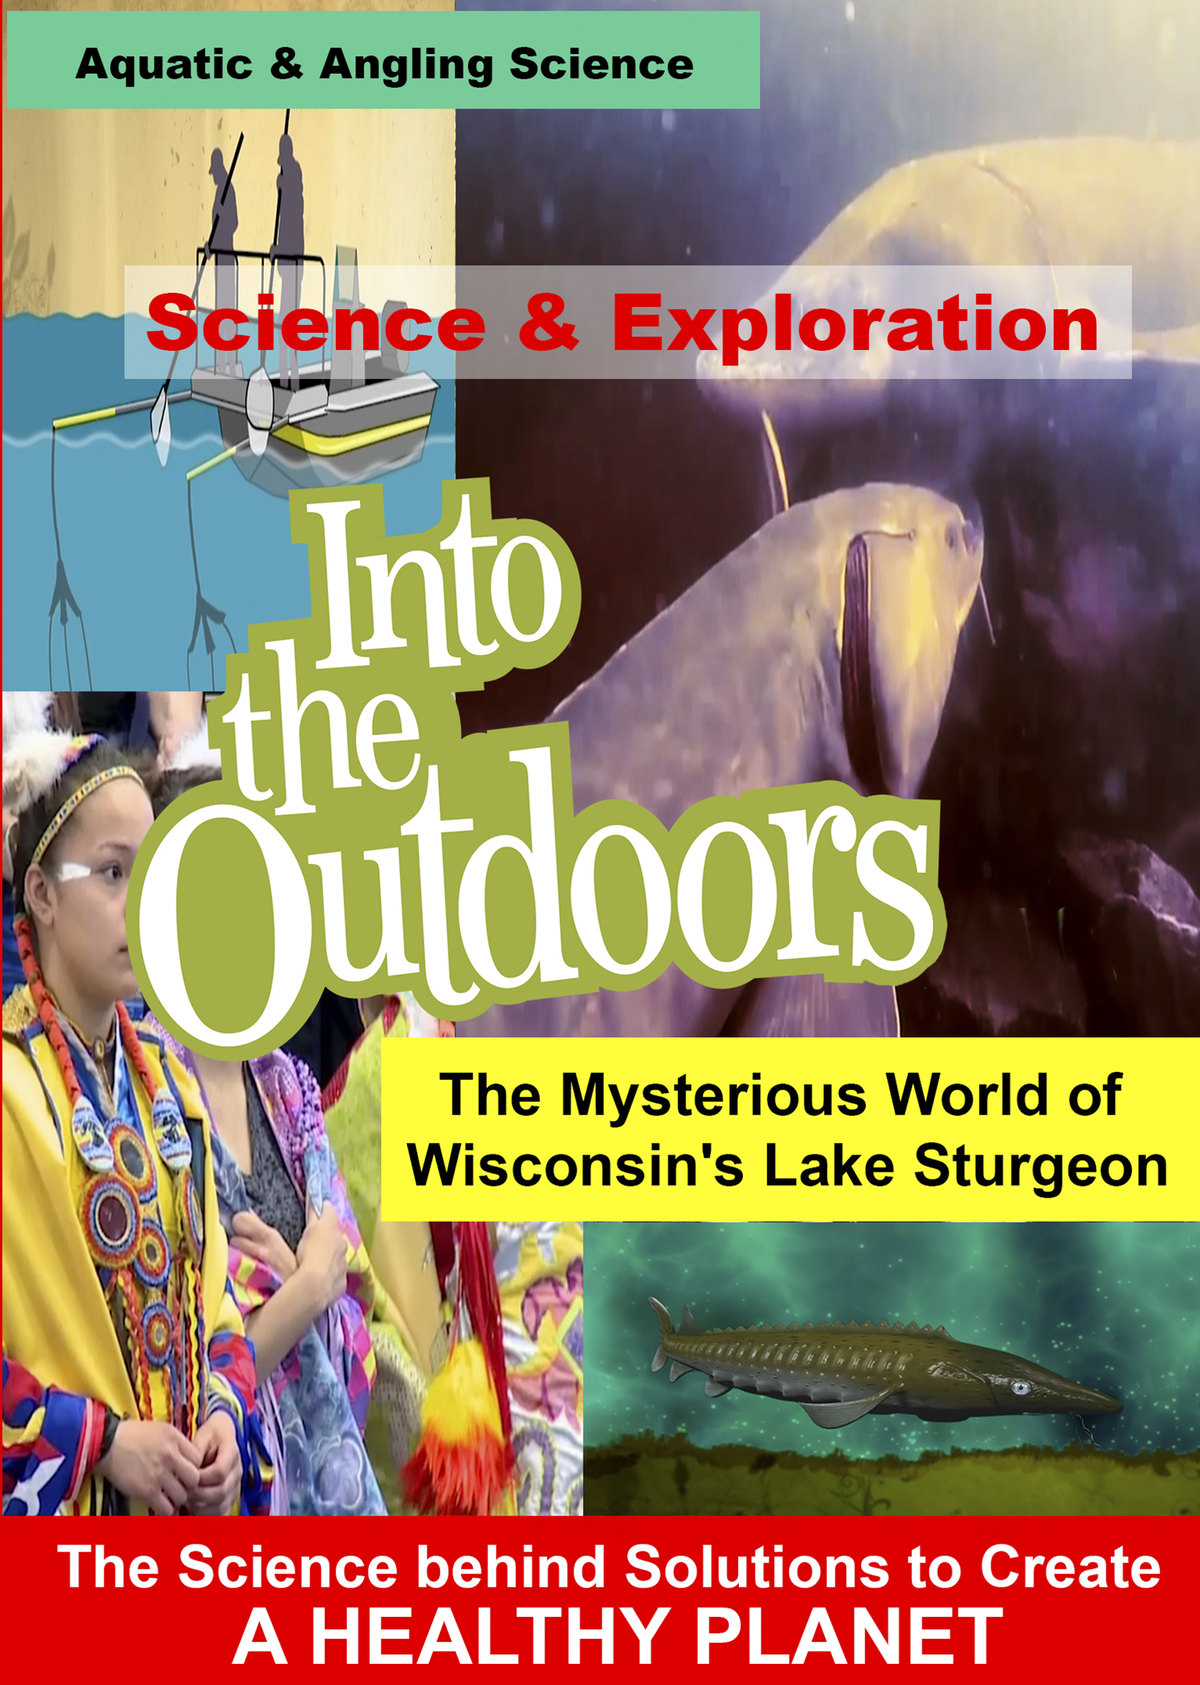 K5009 - The Mysterious World of Wisconsin's Lake Sturgeon